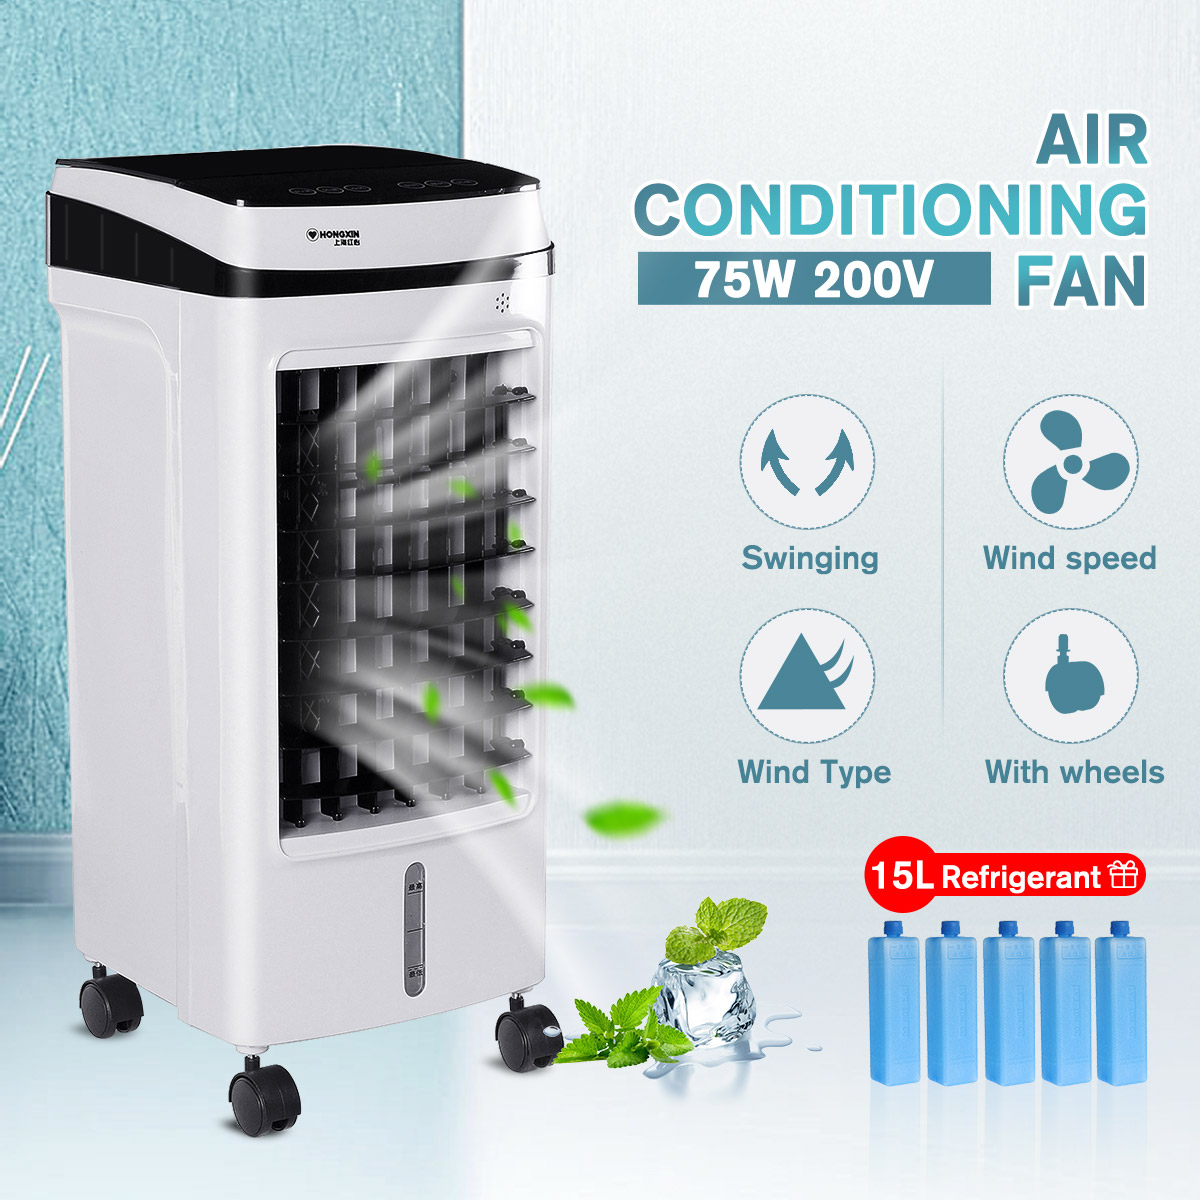 220V Portable Air Conditioner 75W Conditioning Fan Humidifier Cooler 15L Tank Cooling Timed 3 Fan Modes Cooling Fan Humidifier